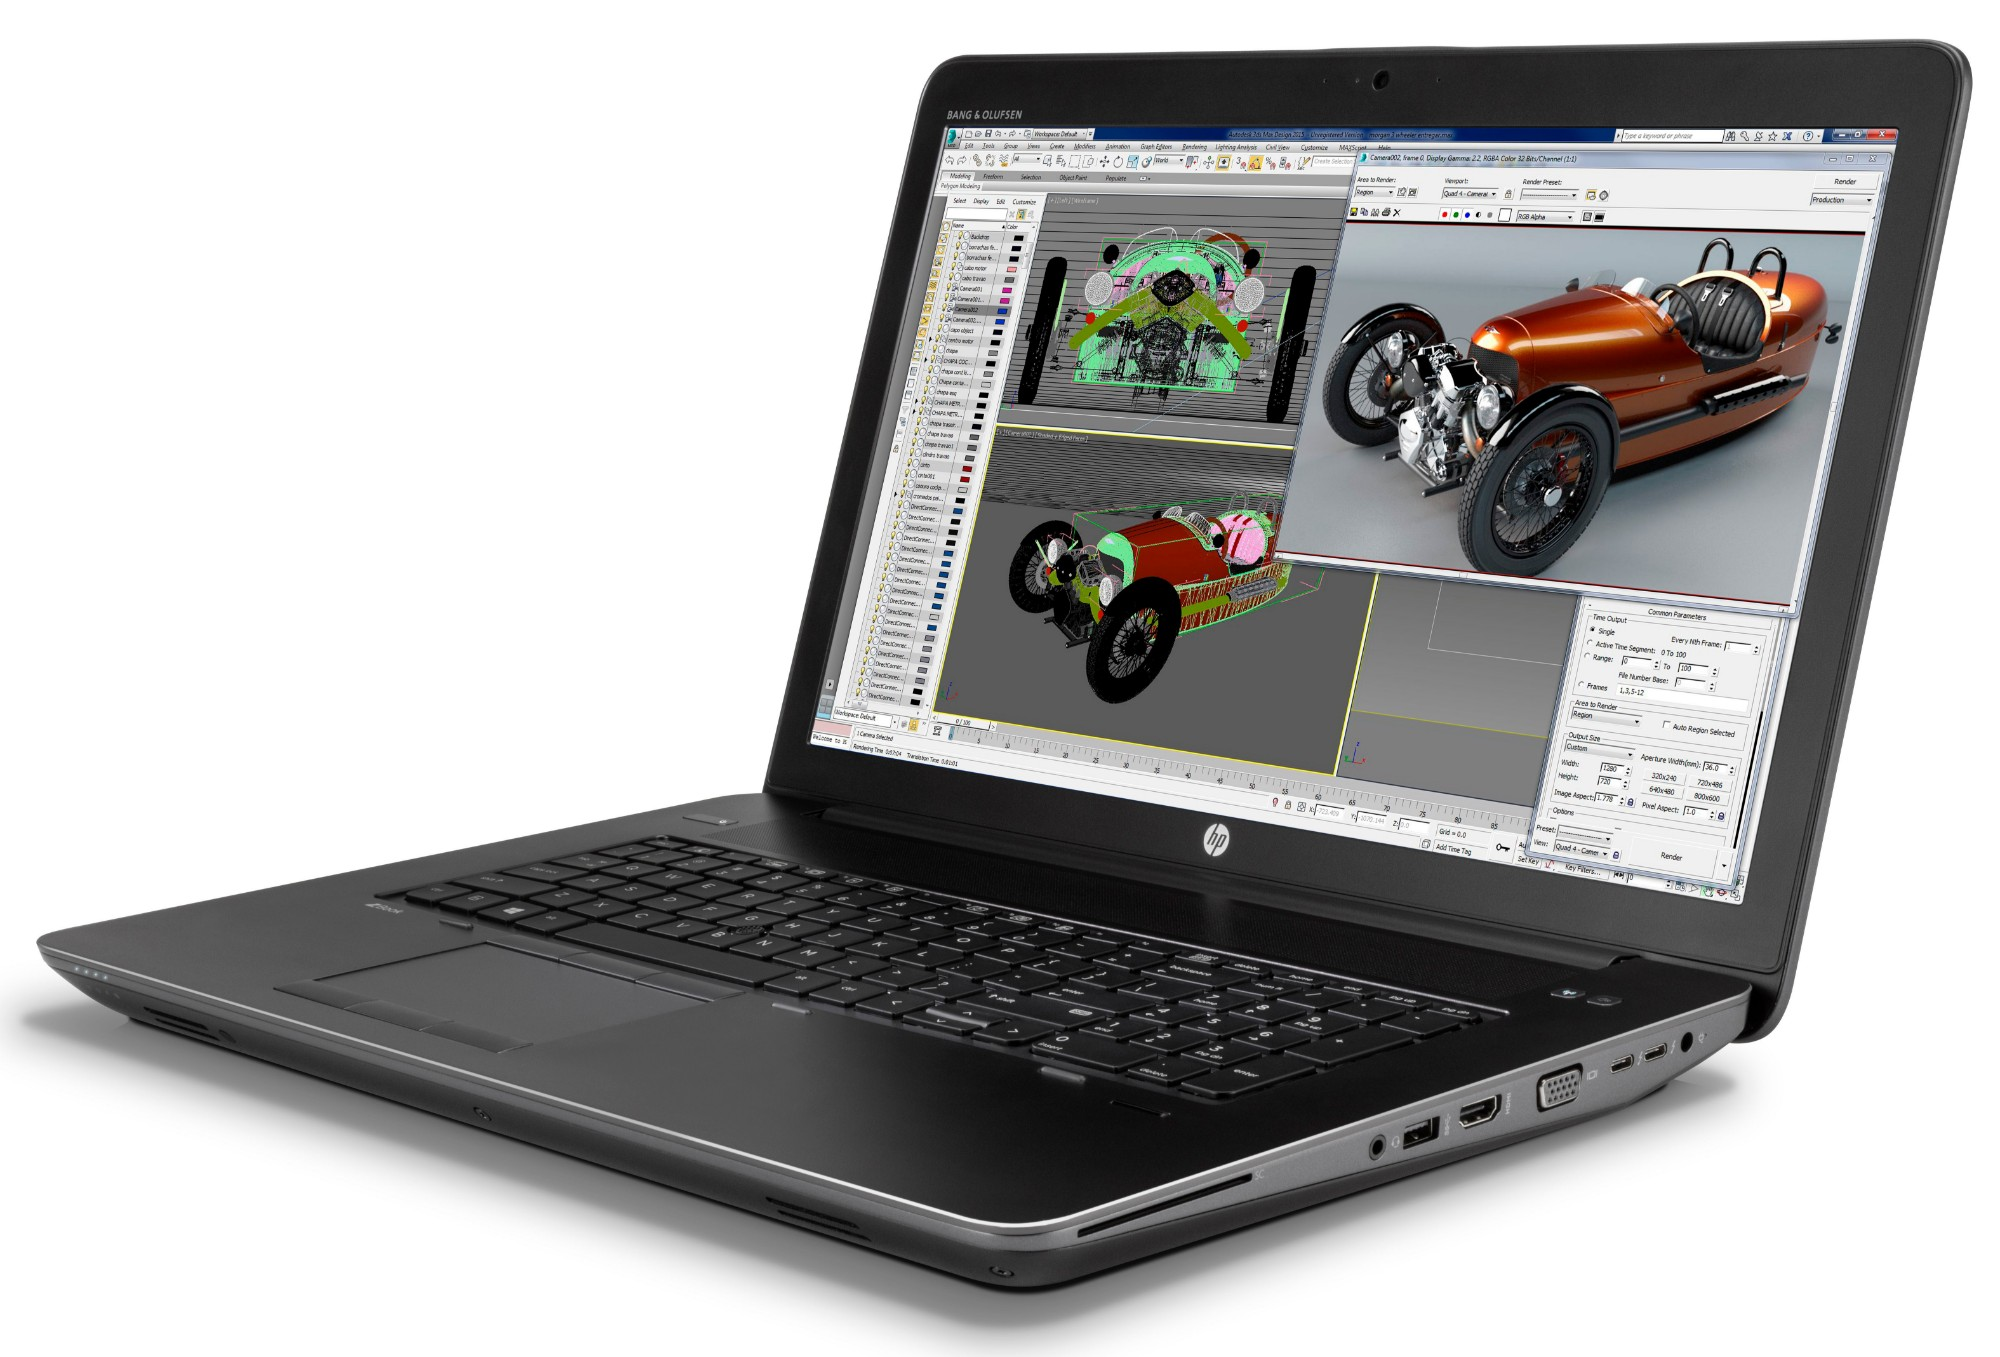 HP ZBook 17 G3 Mobile Workstation (ENERGY STAR), 0 in distributor